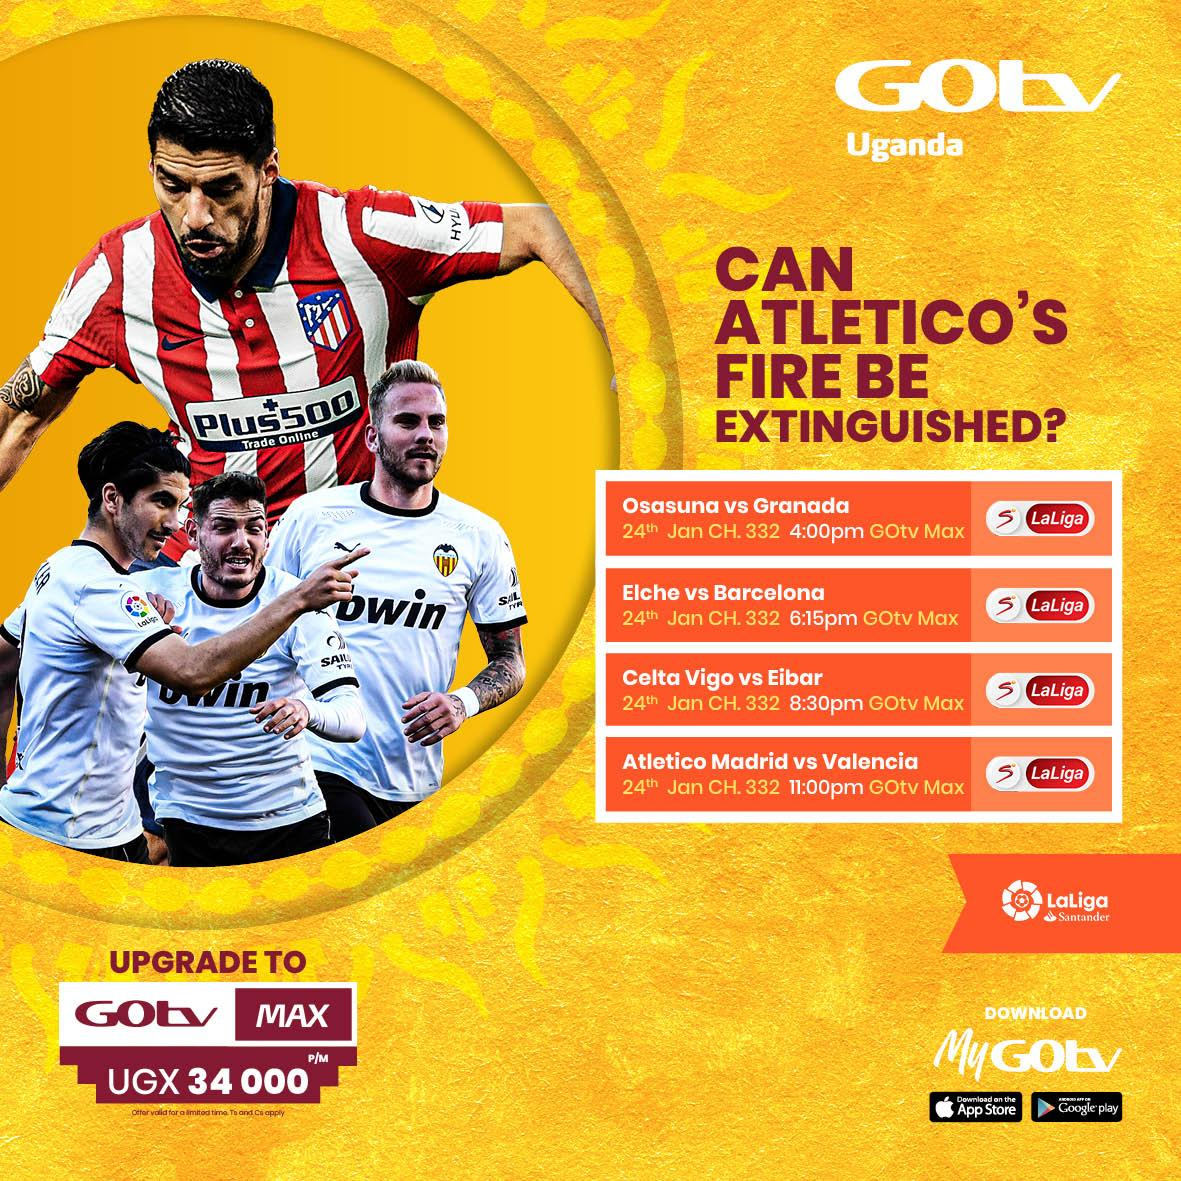 Enjoy La Liga action on Select La Liga 332. Upgrade to GOtv Max and enjoy Osasuna Vs Granada at 4:00PM, Elche Vs Barcelona at 6:15PM, Celta Vigo Vs Eiber at 8:30PM and Atletico Madrid Vs Valencia at 11:00PM.  #FootballWorthWatching https://t.co/dPfcjwmCao